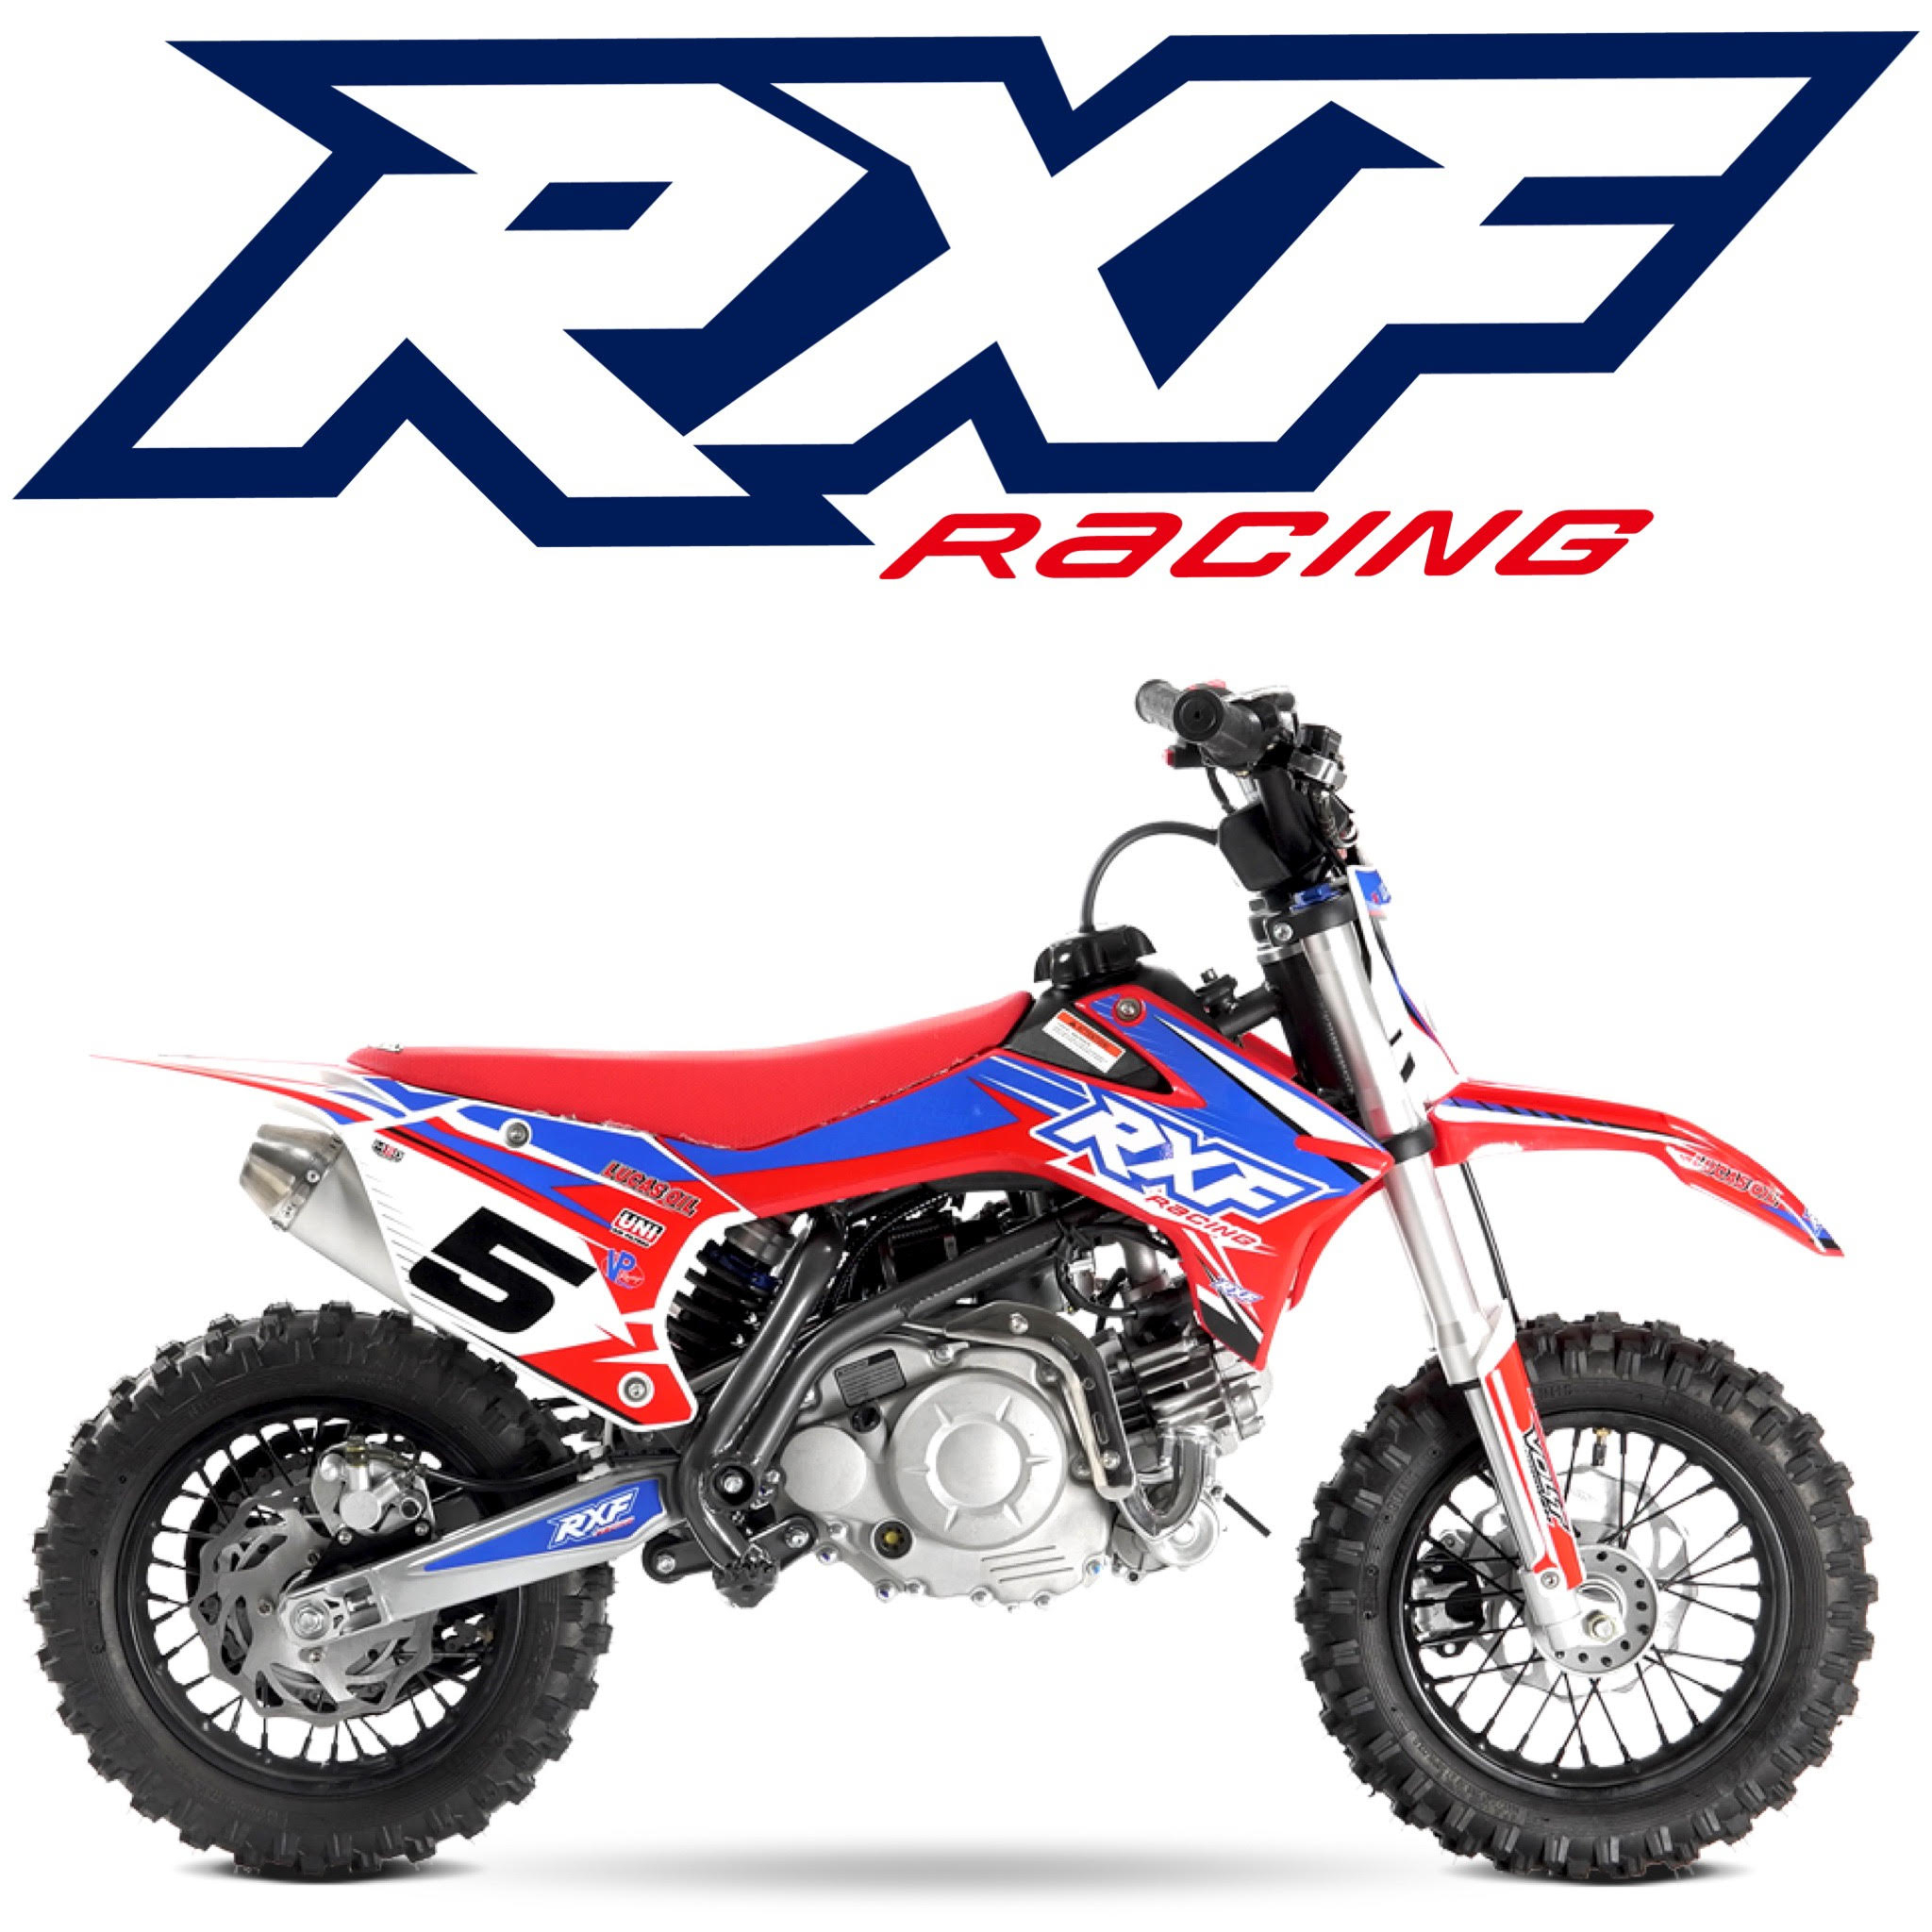 RXF Racing™ Motorcycles